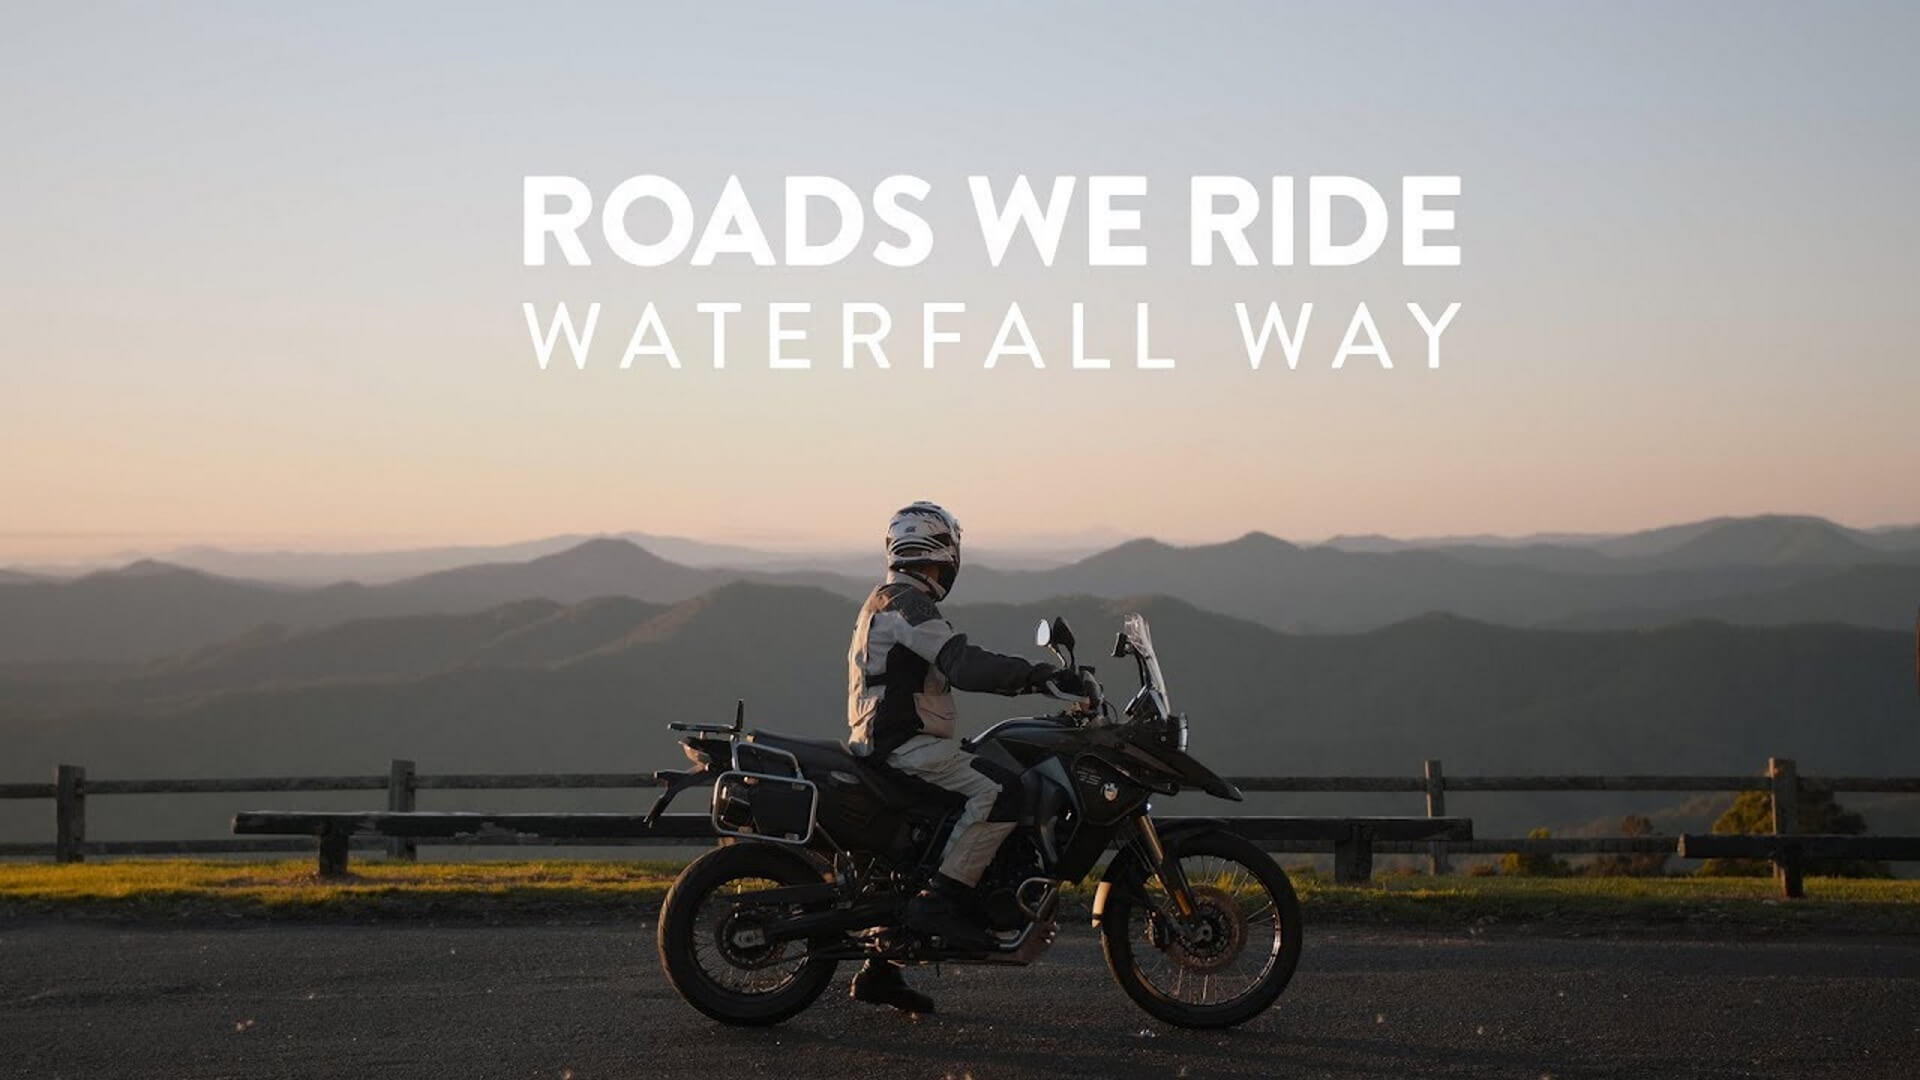 Roads We Ride Waterfall Way